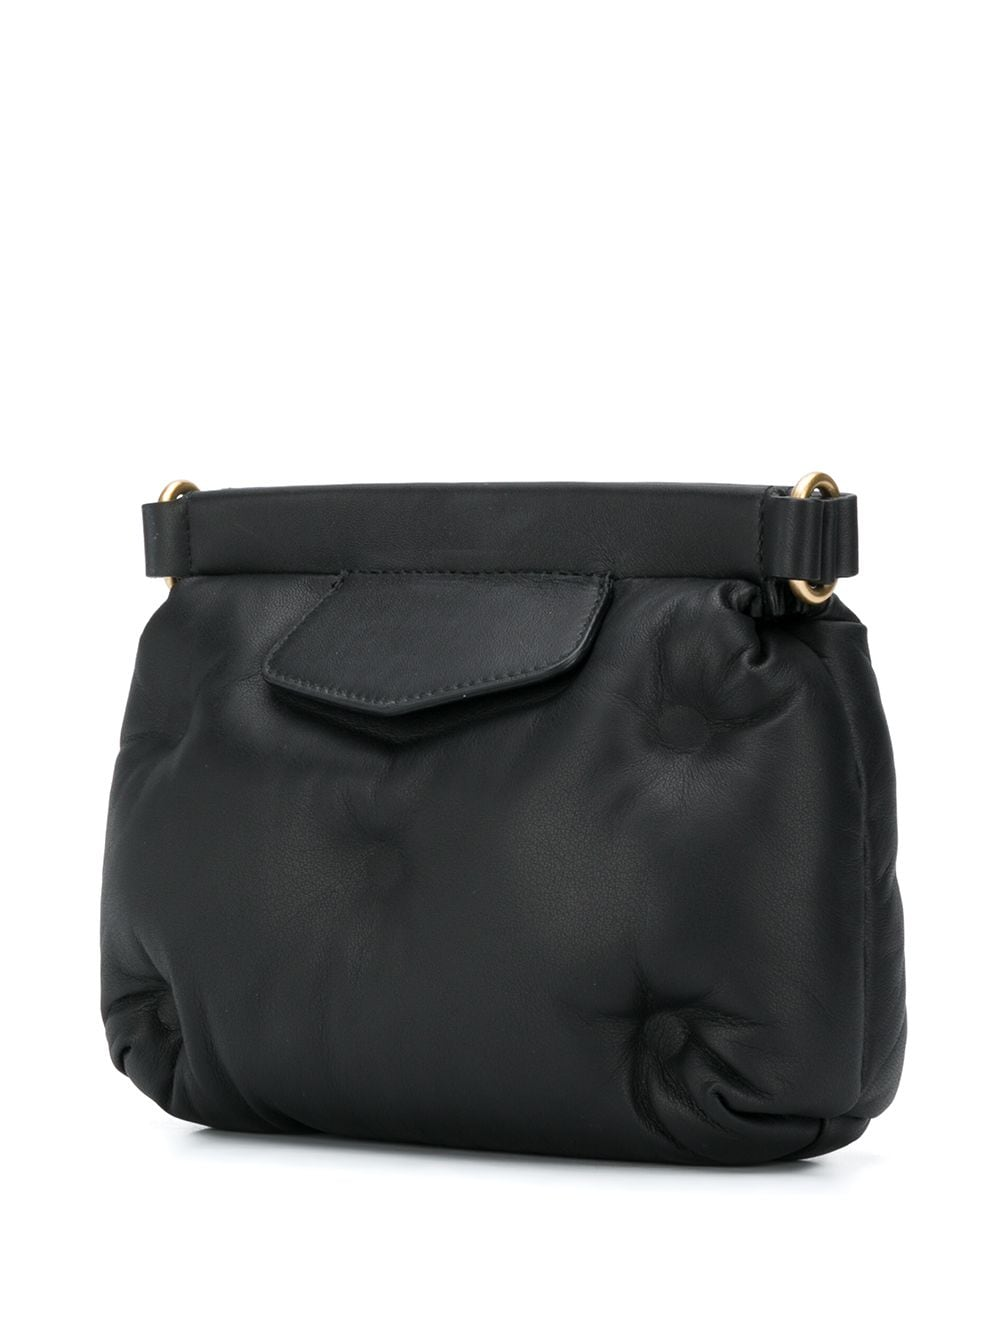 MAISON MARGIELA WOMEN GLAM SLAM BAG